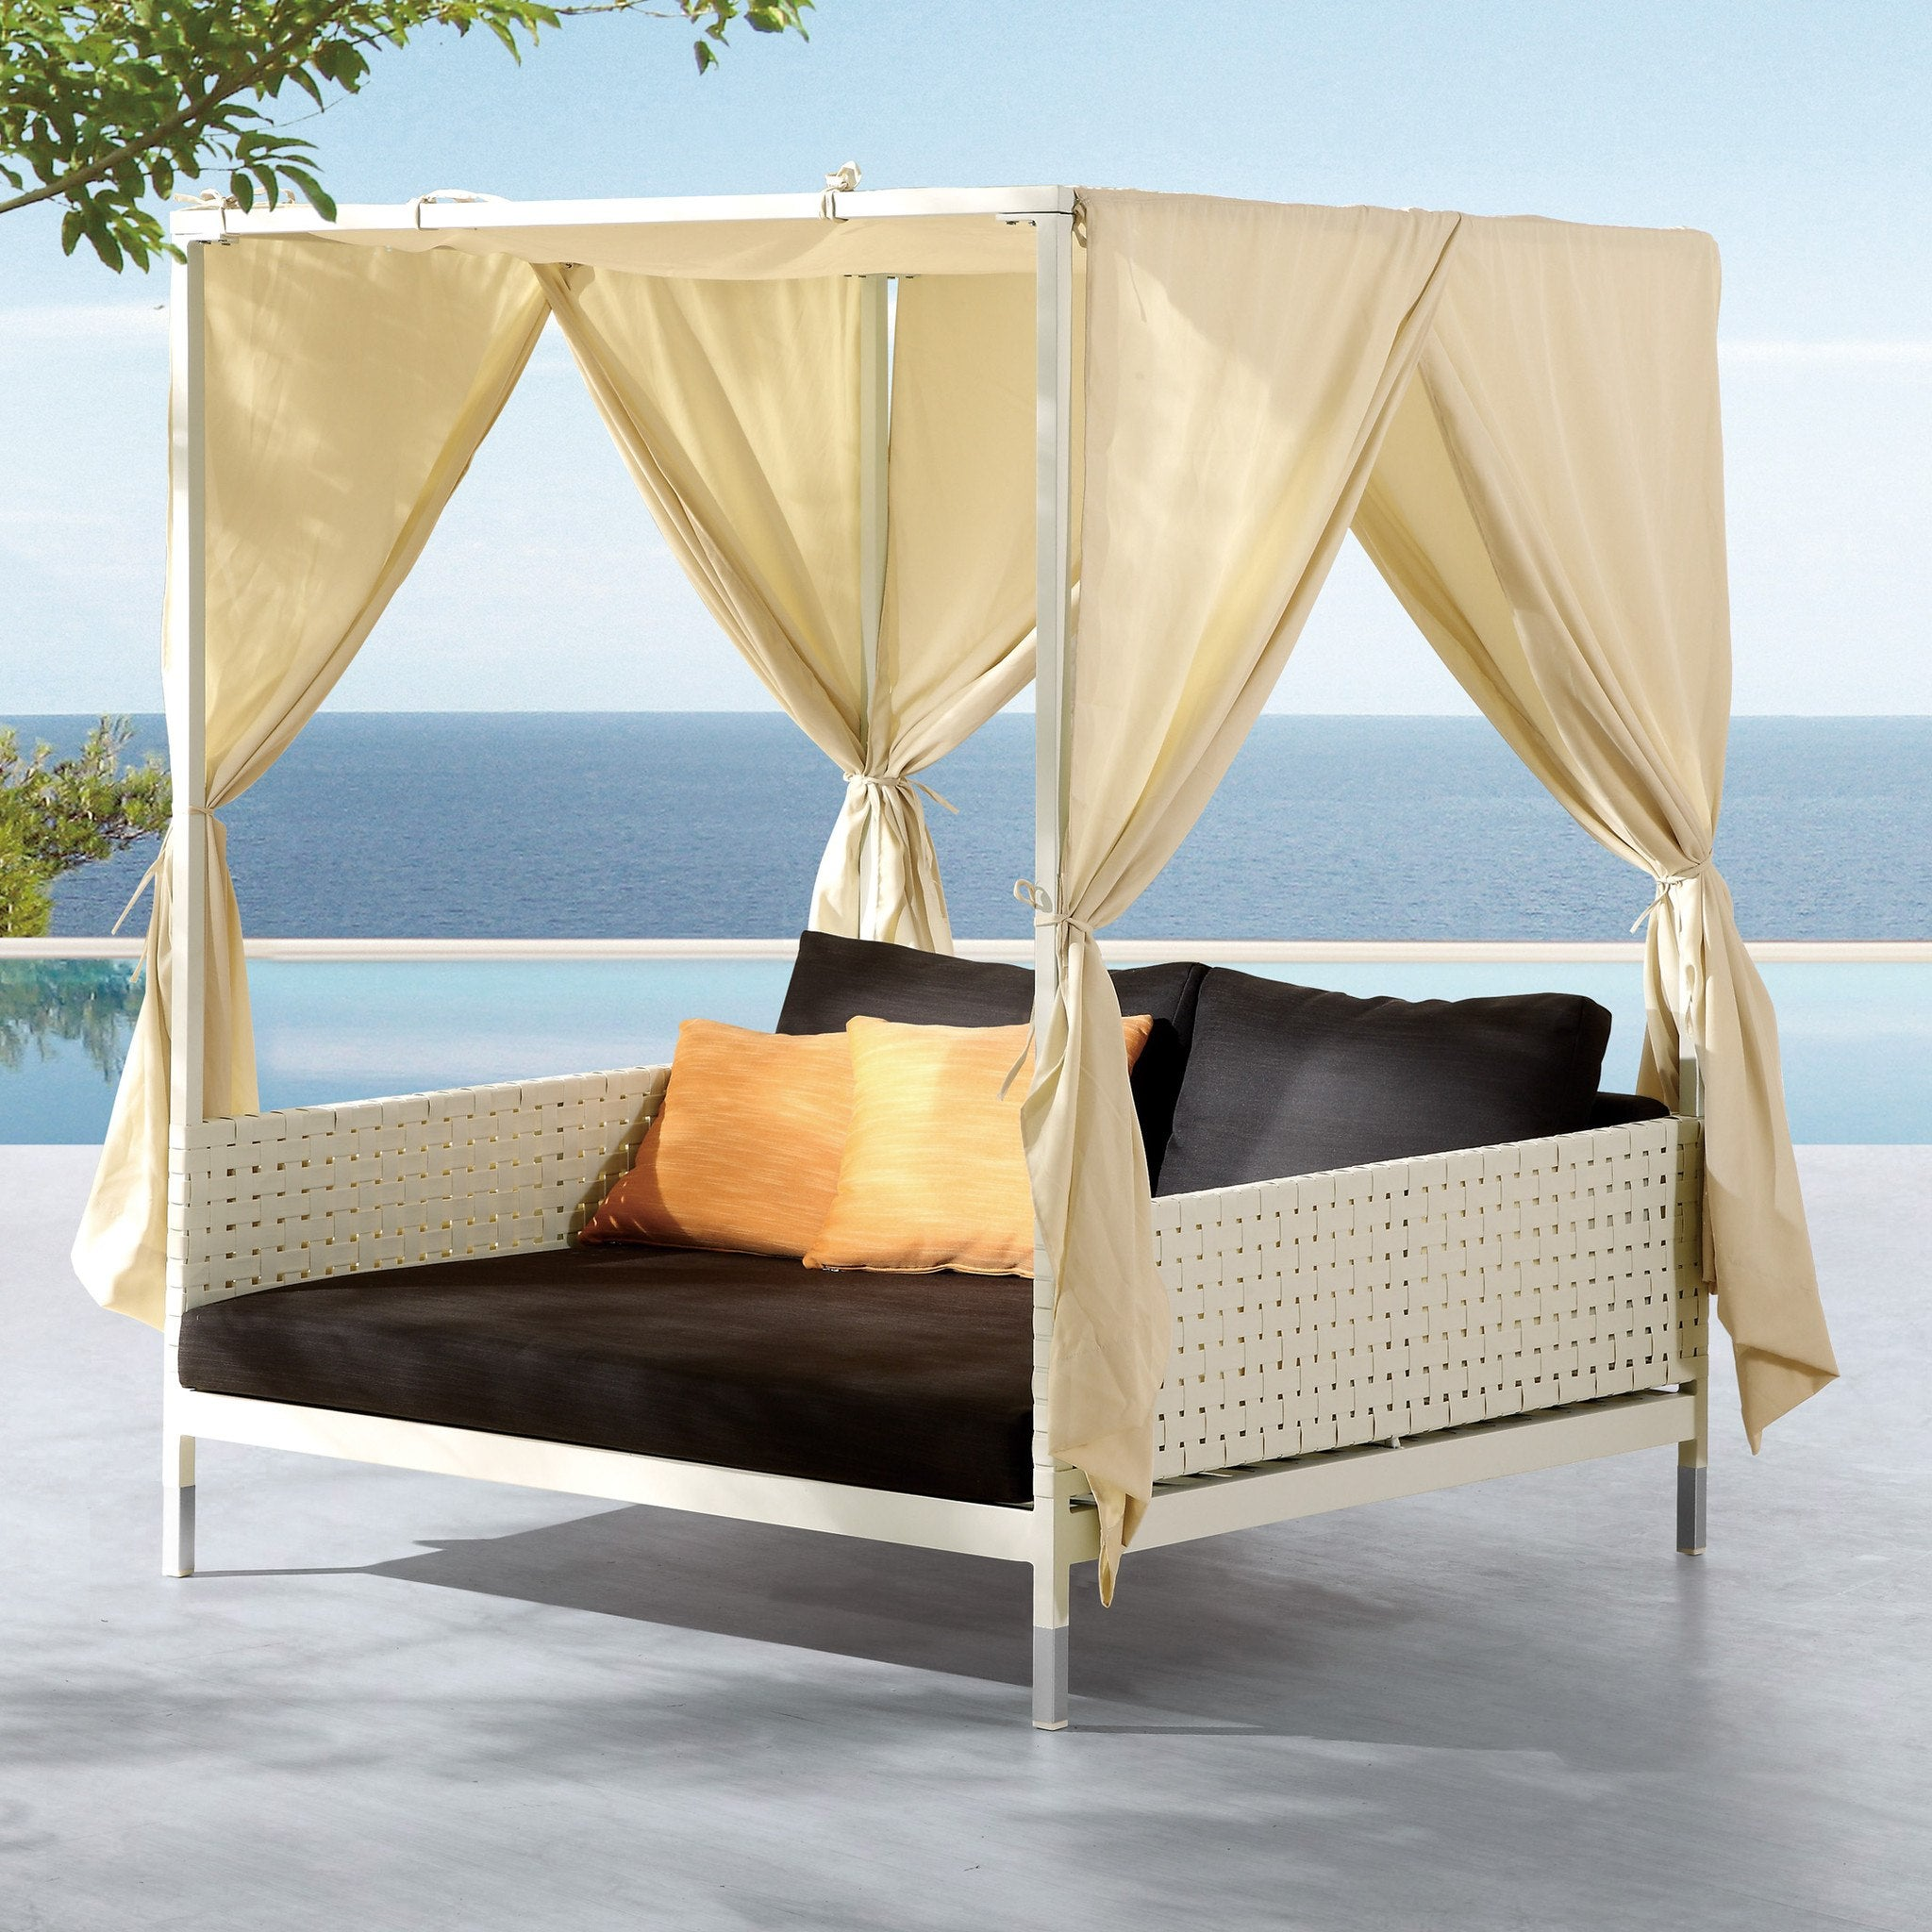 - Contract Quality Outdoor Daybed Canopy TB Outdoor Design